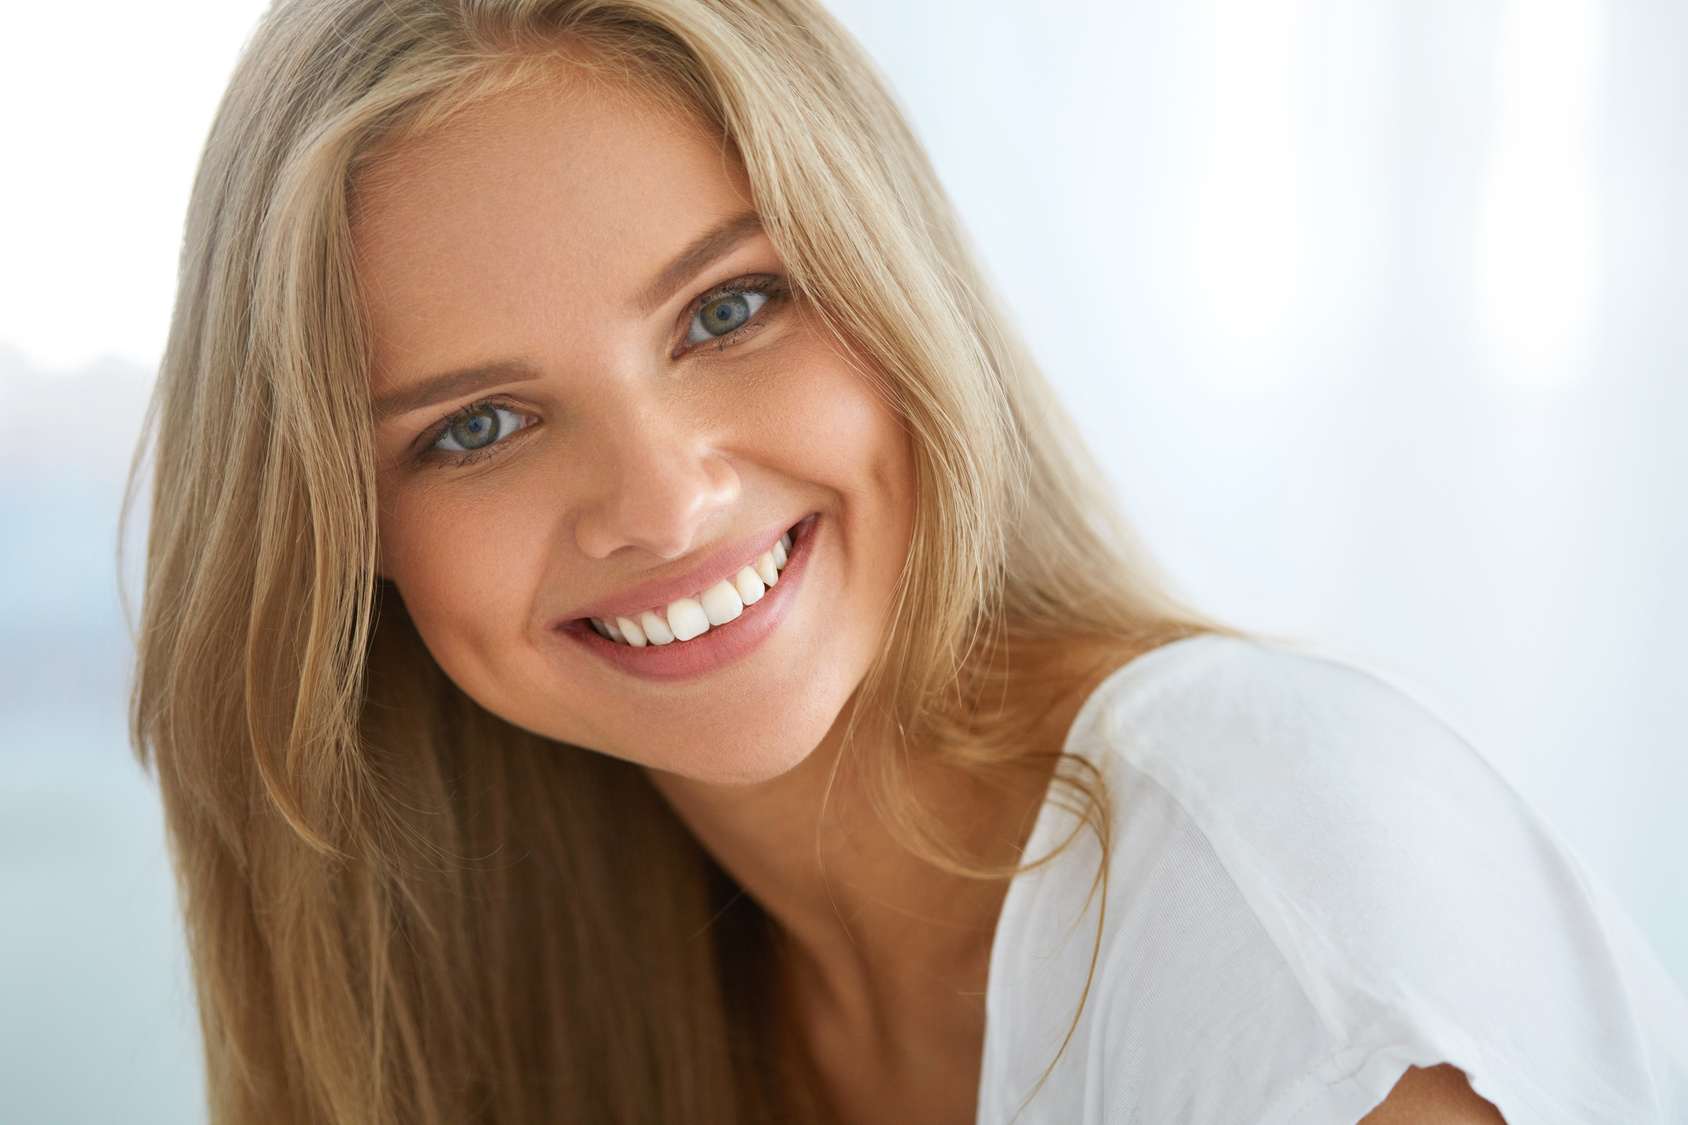 Attractive young lady enjoying beautiful teeth after a smile makeover at the dentist